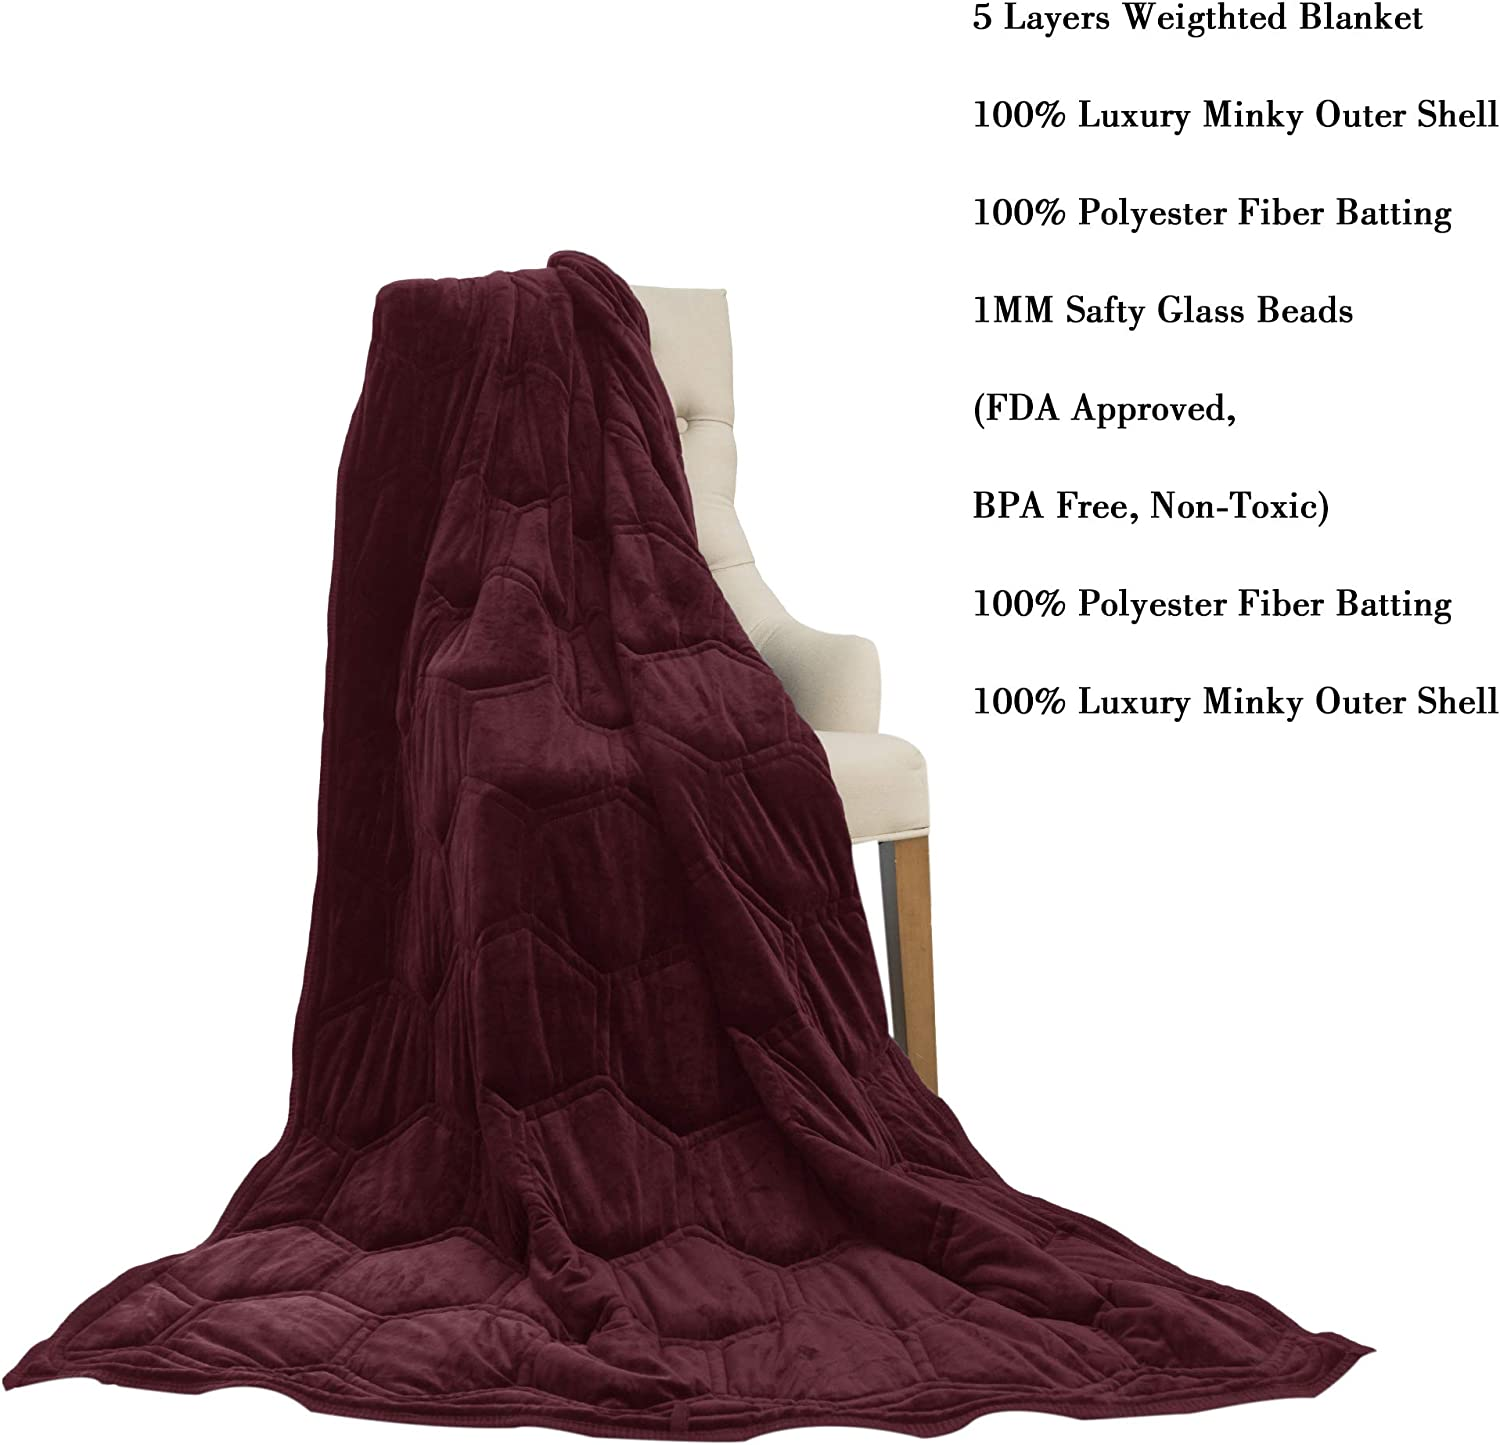 Chocolate, 36x48 5LB CHHKON Weighted Blanket Ultra Plush Minky Warm Luxury New Pattern Design for Adults and Children